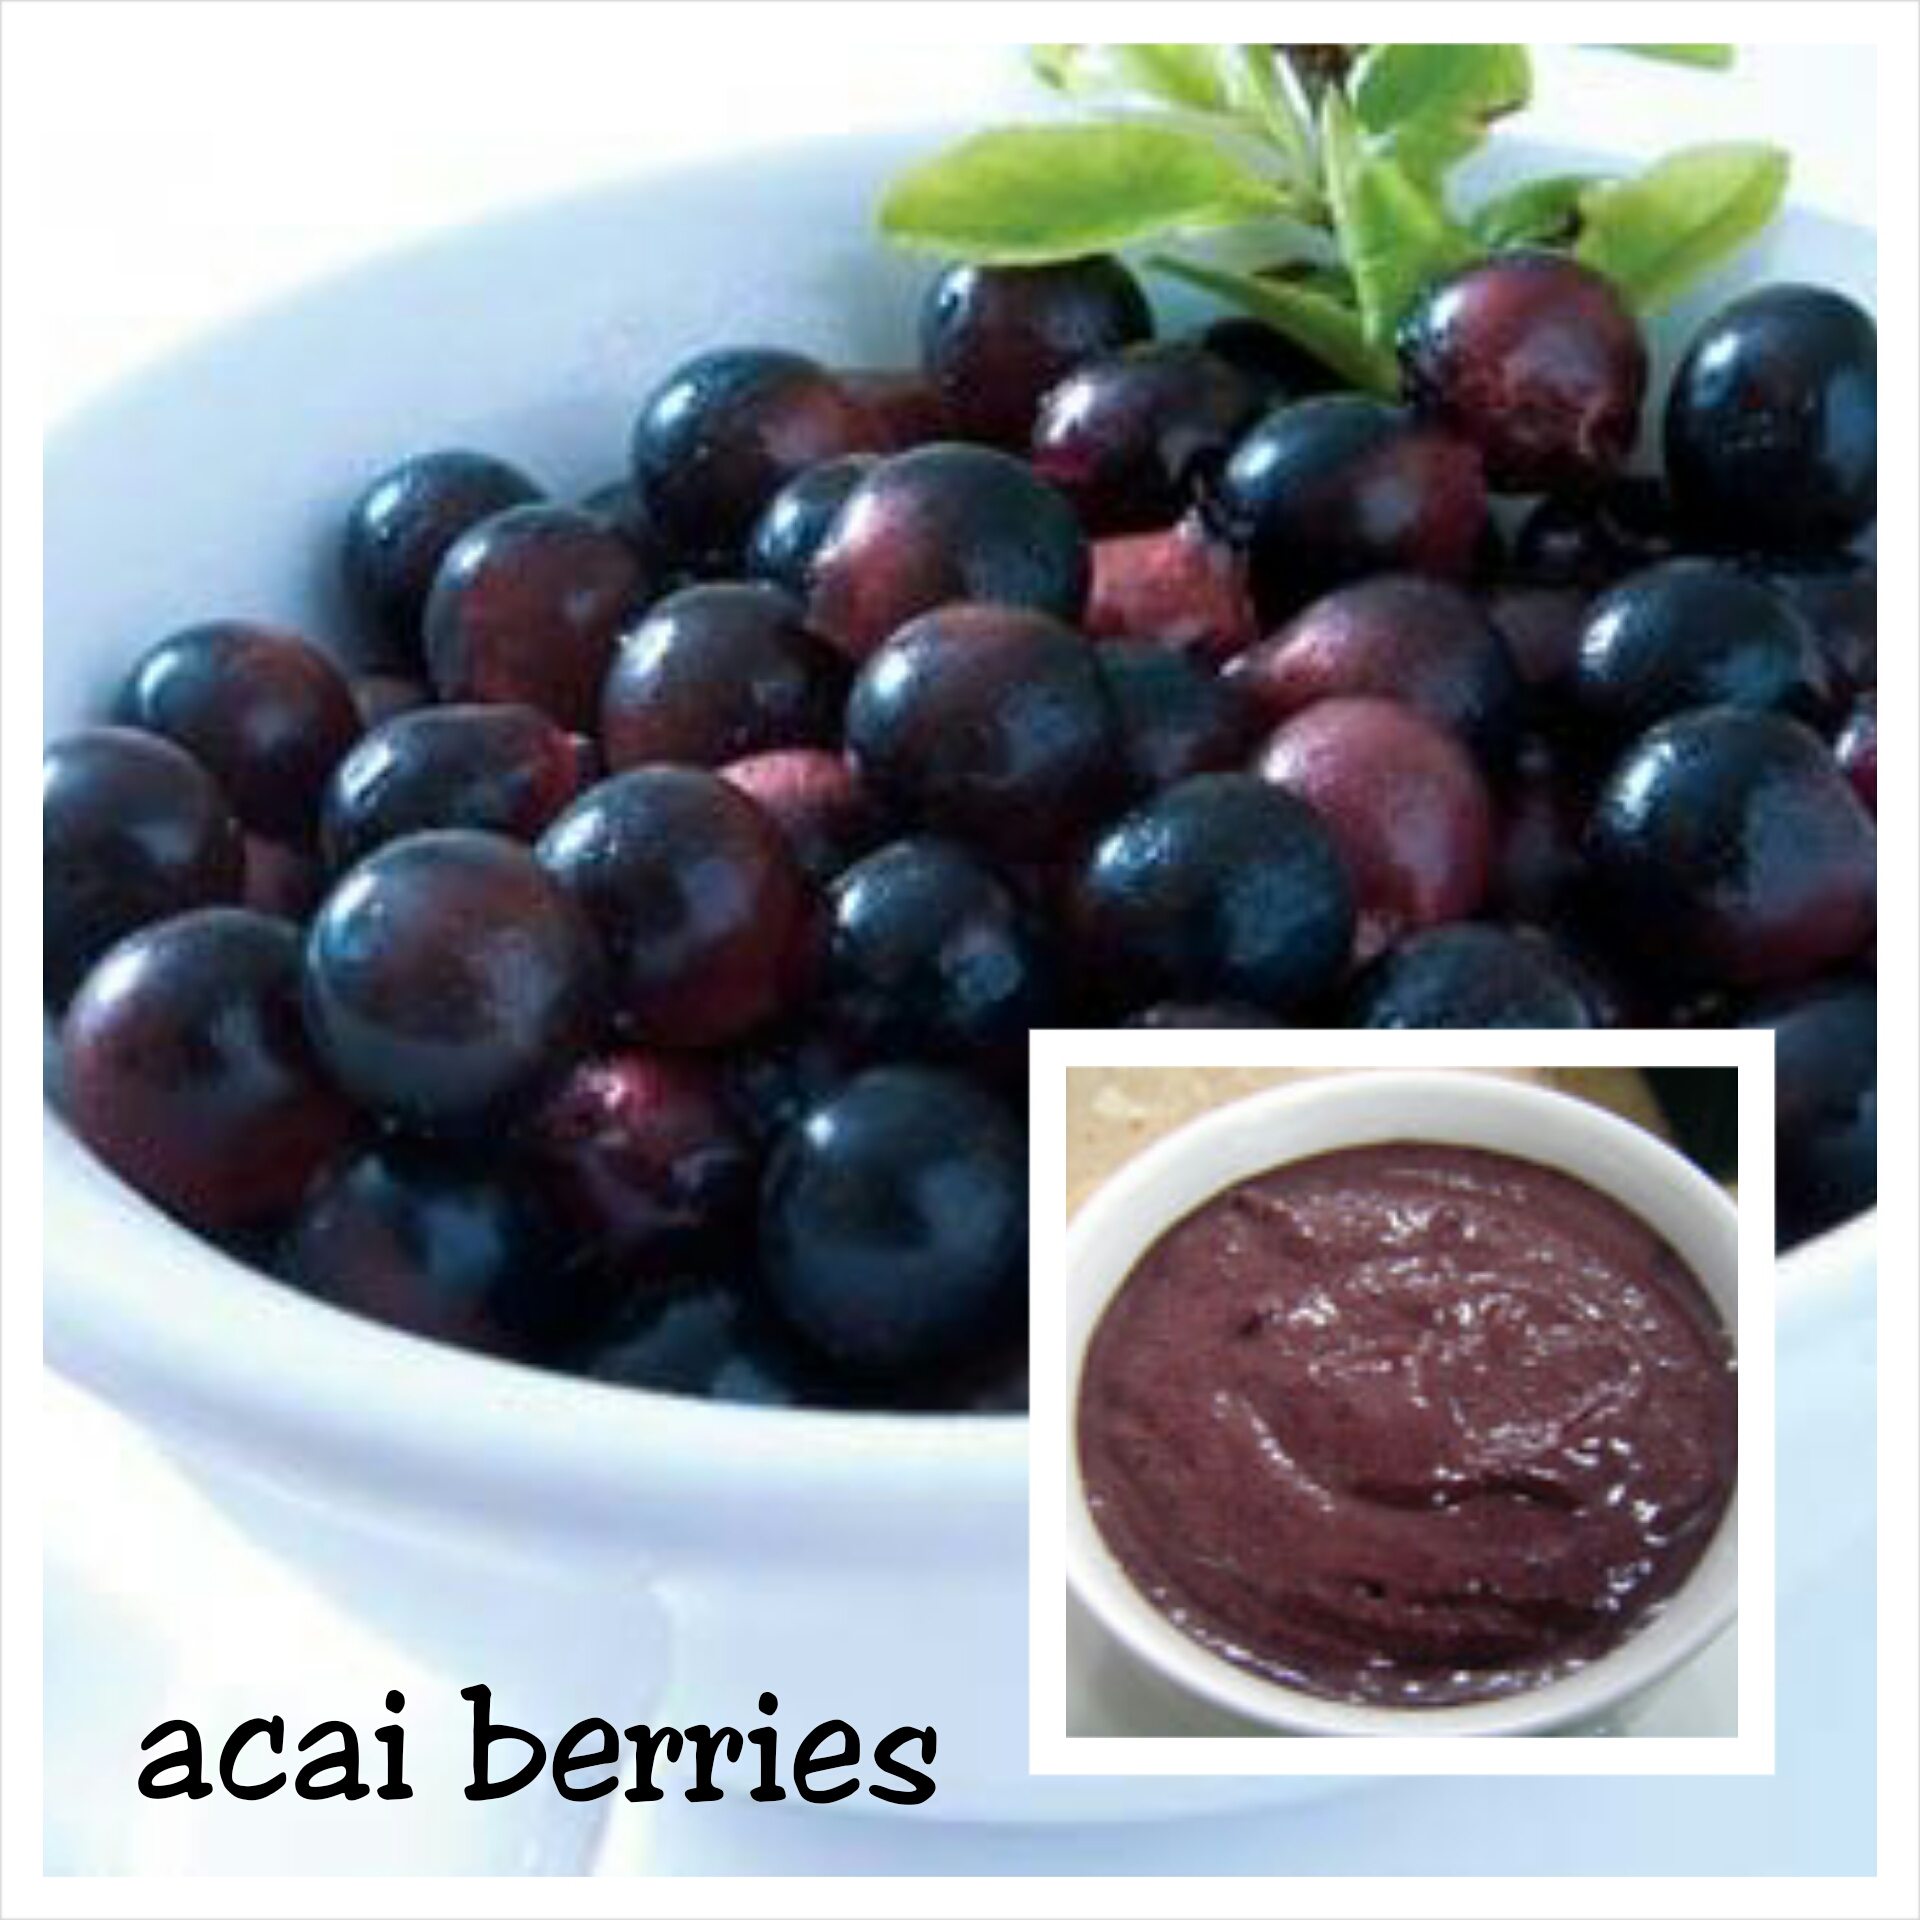 where can i get acai berries